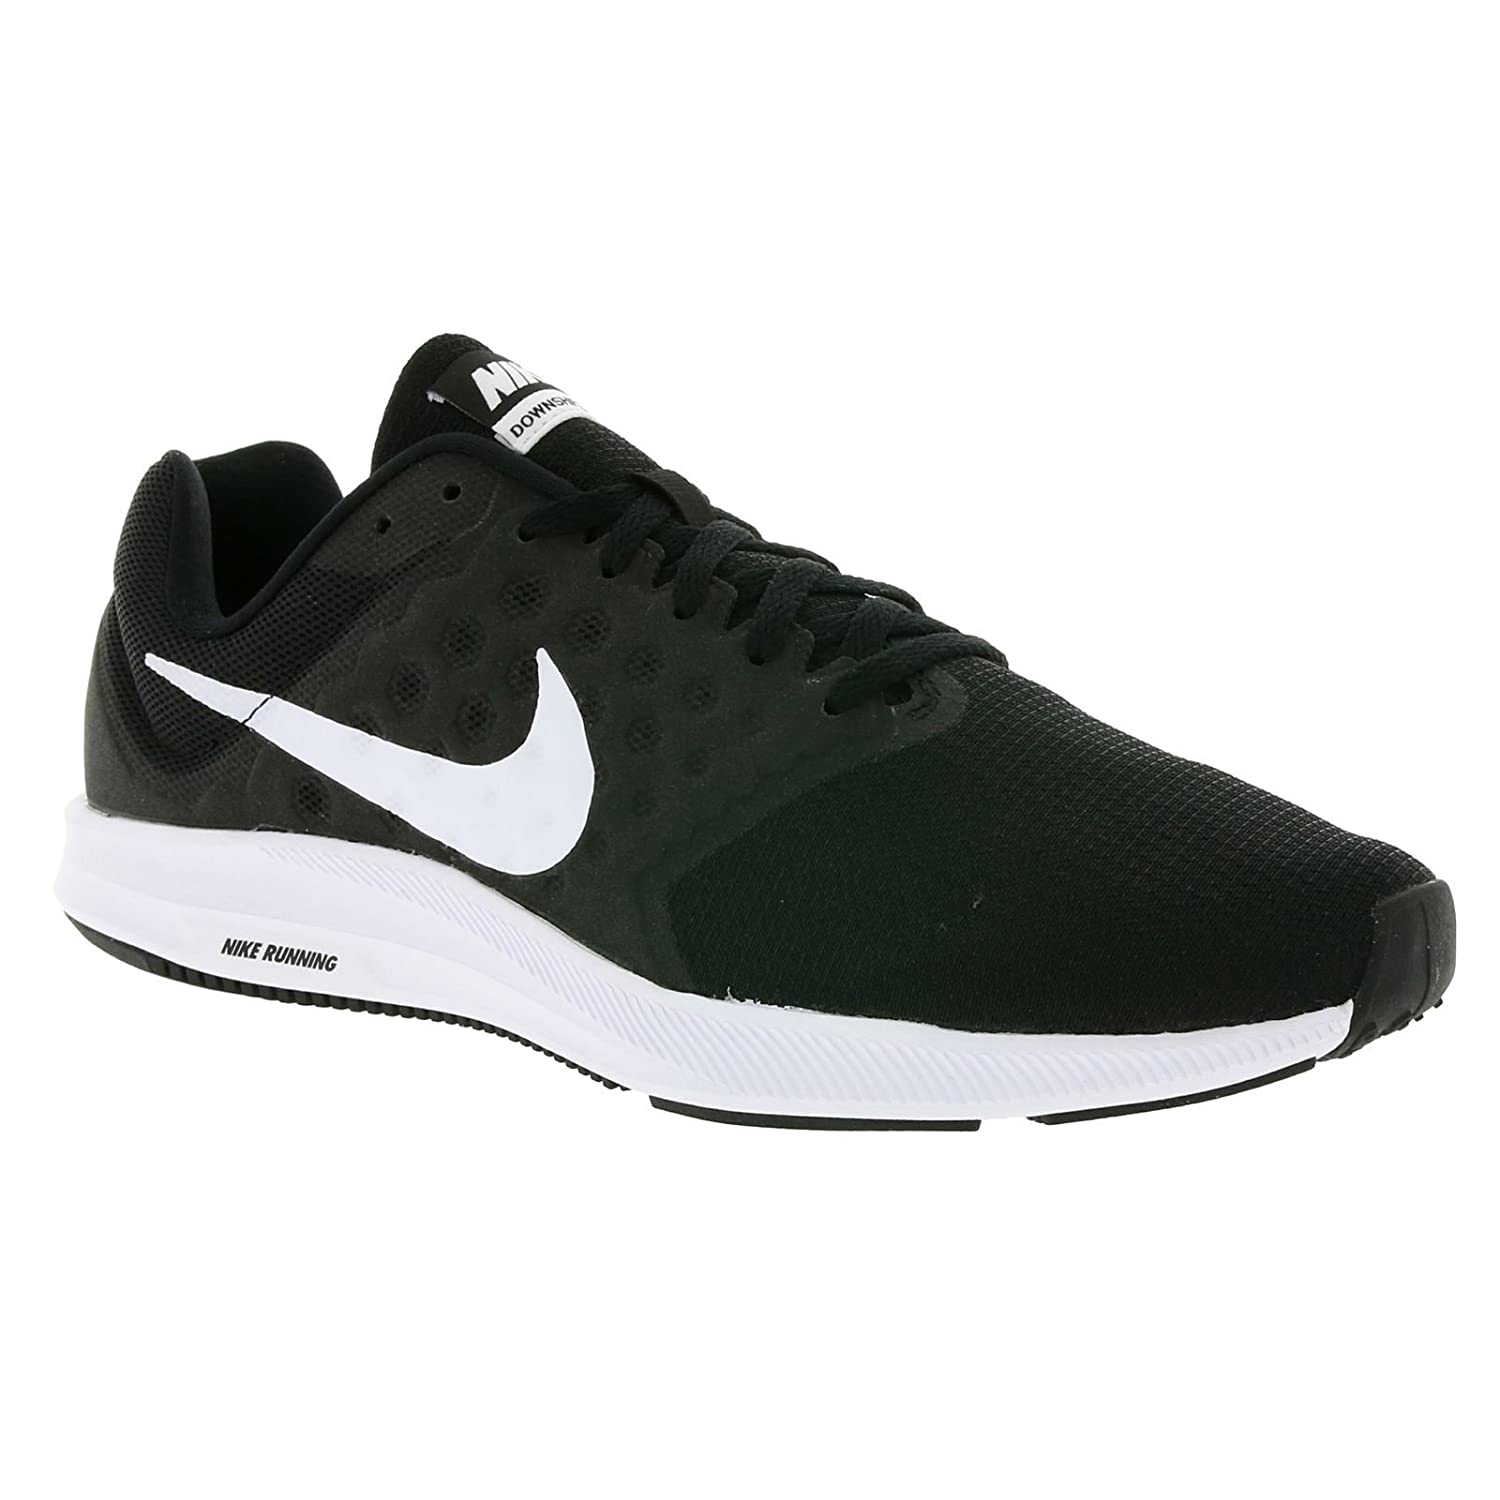 27a86cb656328 Nike Men s Downshifter 7 Running Shoes  Buy Online at Low Prices in India -  Amazon.in